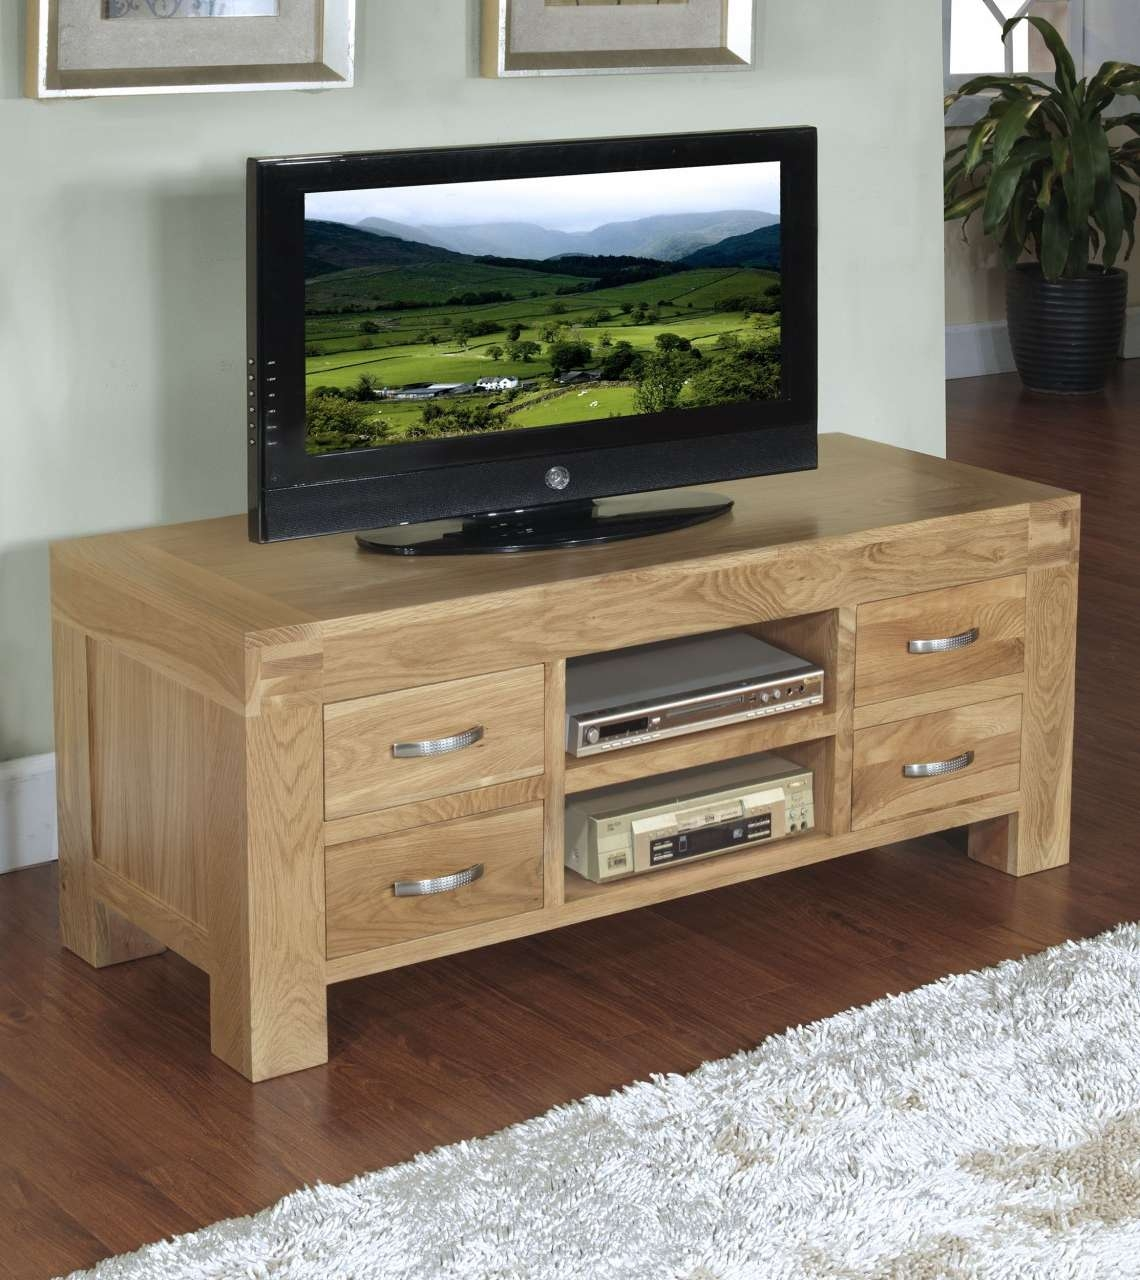 Oak Television Cabinet | Centerfordemocracy Inside Contemporary Oak Tv Stands (View 6 of 15)